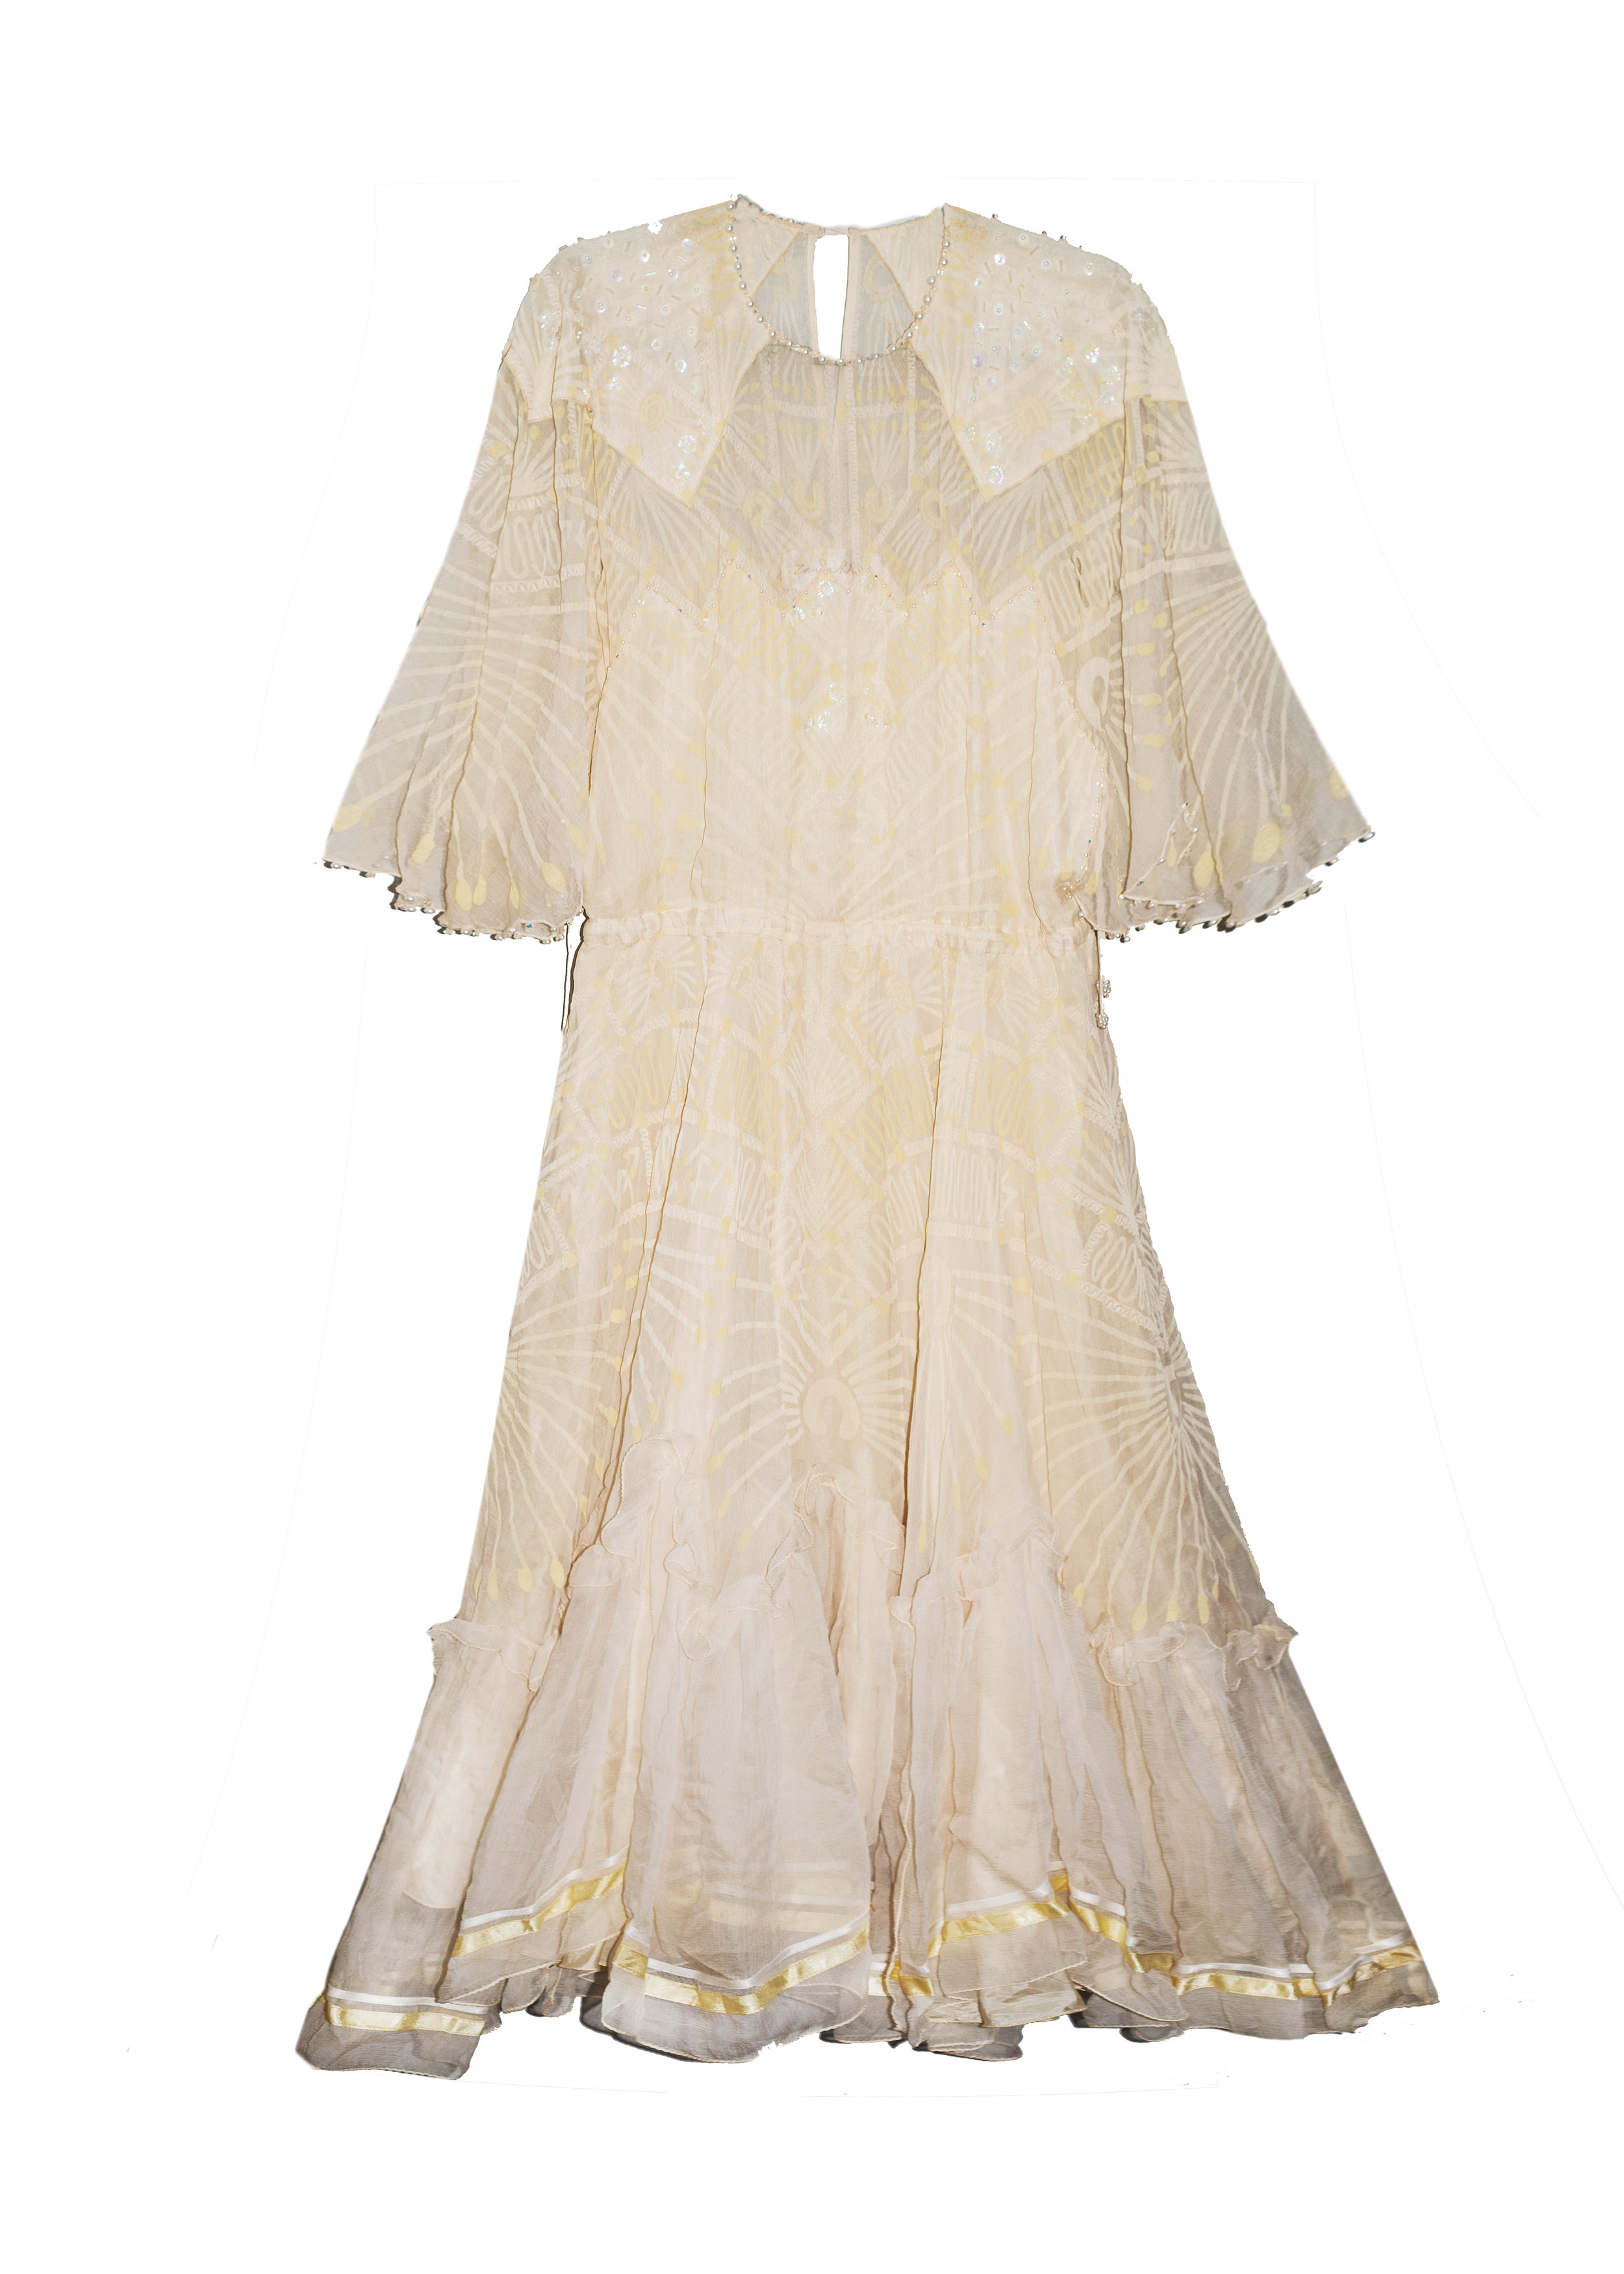 ZANDRA RHODES Cir. 1980 Collection Hand Painted Chiffon - A whimsical dreamy piece by the adored ZANDRA RHODES at A PART OF THE REST